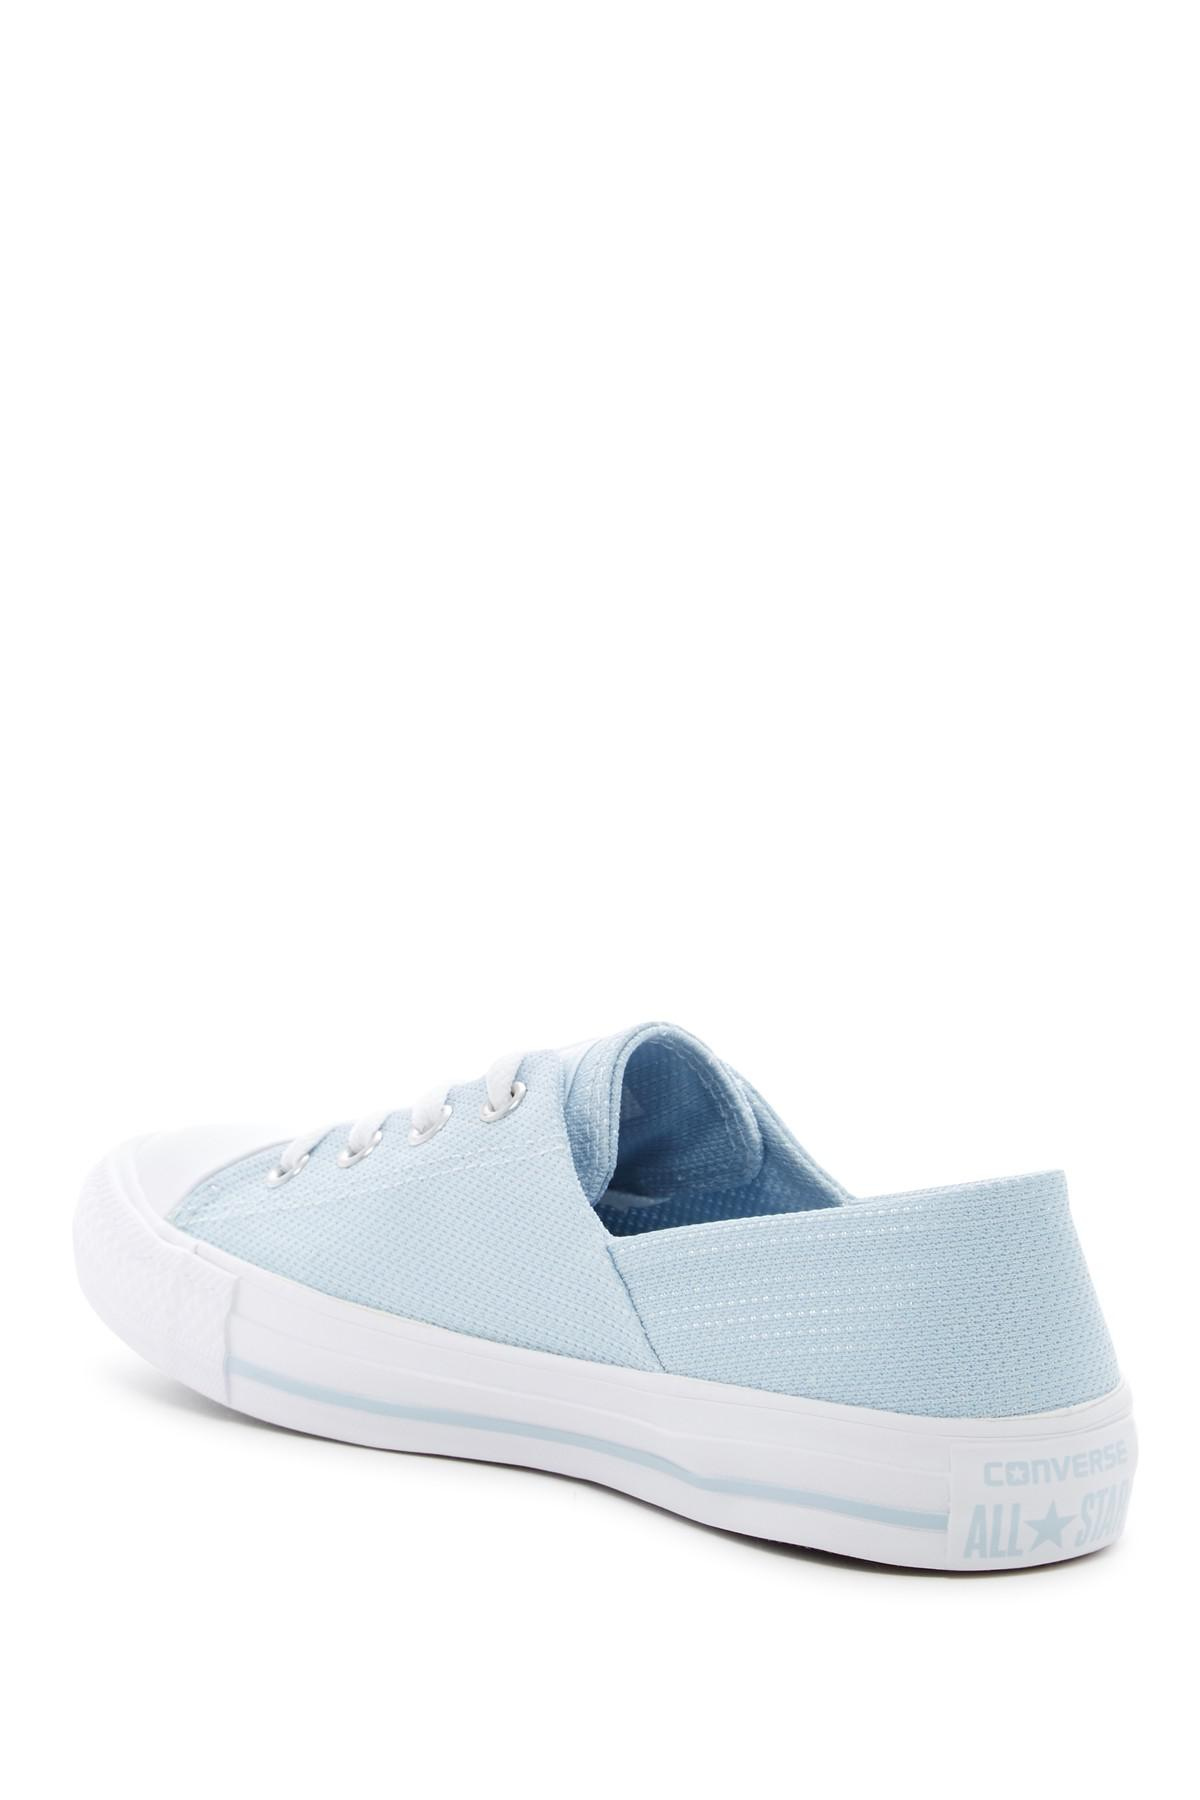 22472b3074f Gallery. Previously sold at  Nordstrom Rack · Women s Converse Chuck Taylor  ...